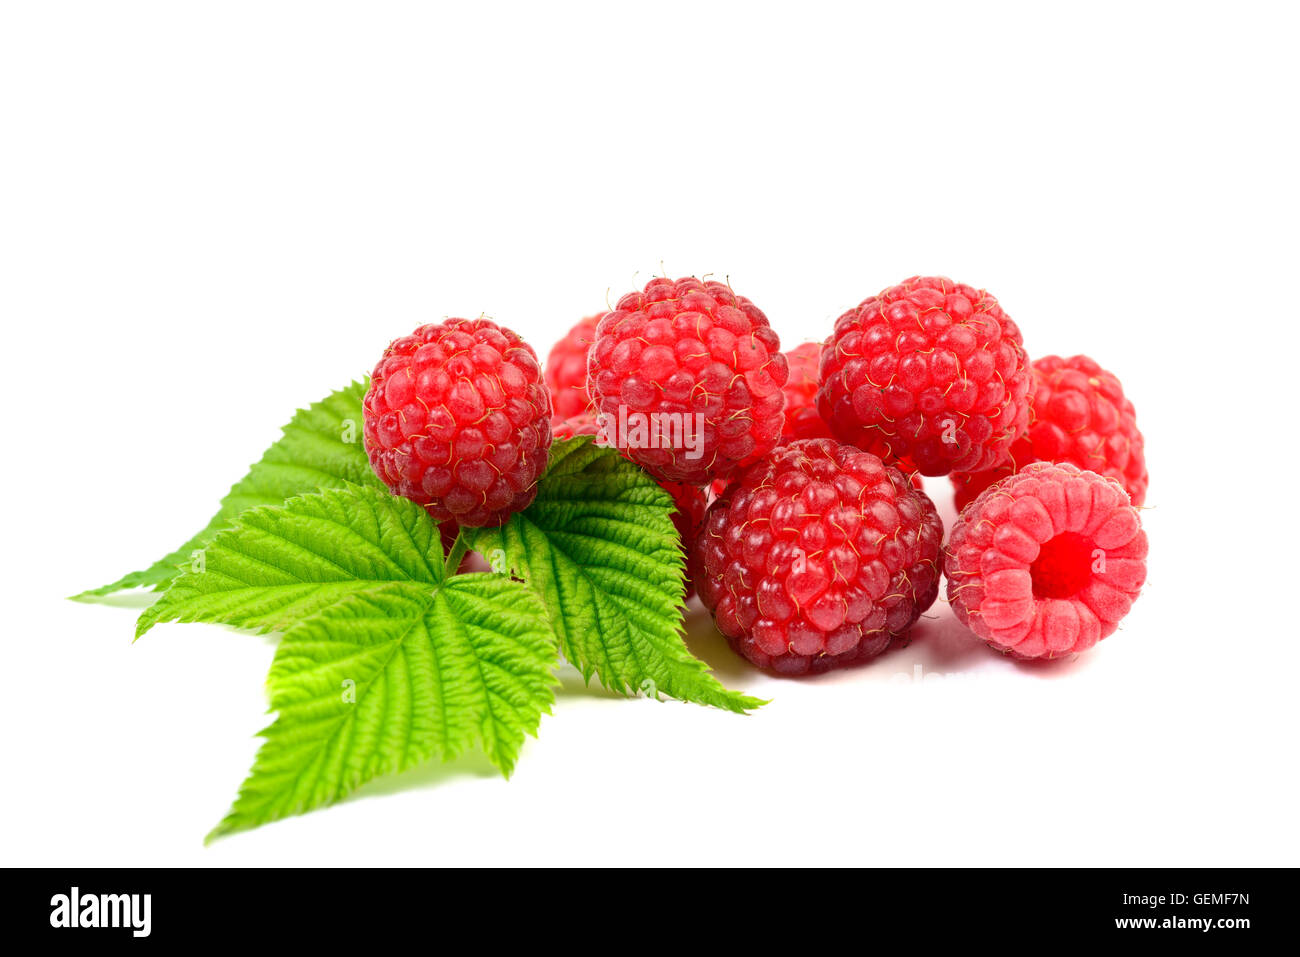 Ripe raspberry with leaf on white background - Stock Image